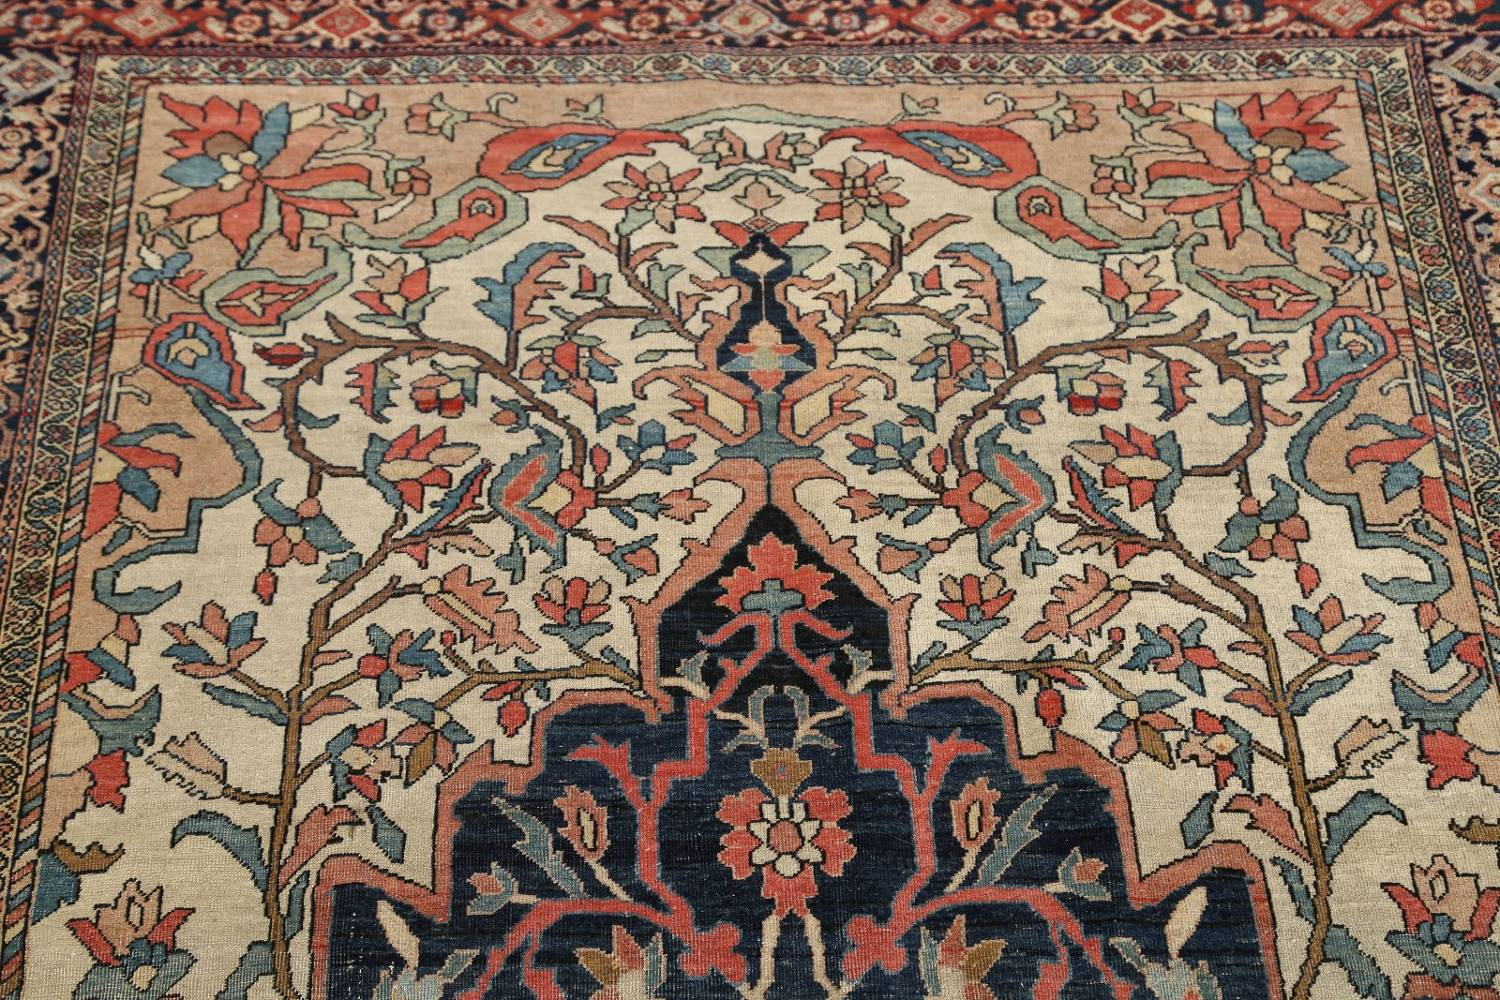 Pre-1900 Antique Floral Sarouk Farahan Persian Hand-Knotted 4'x7' Wool Area Rug image 10